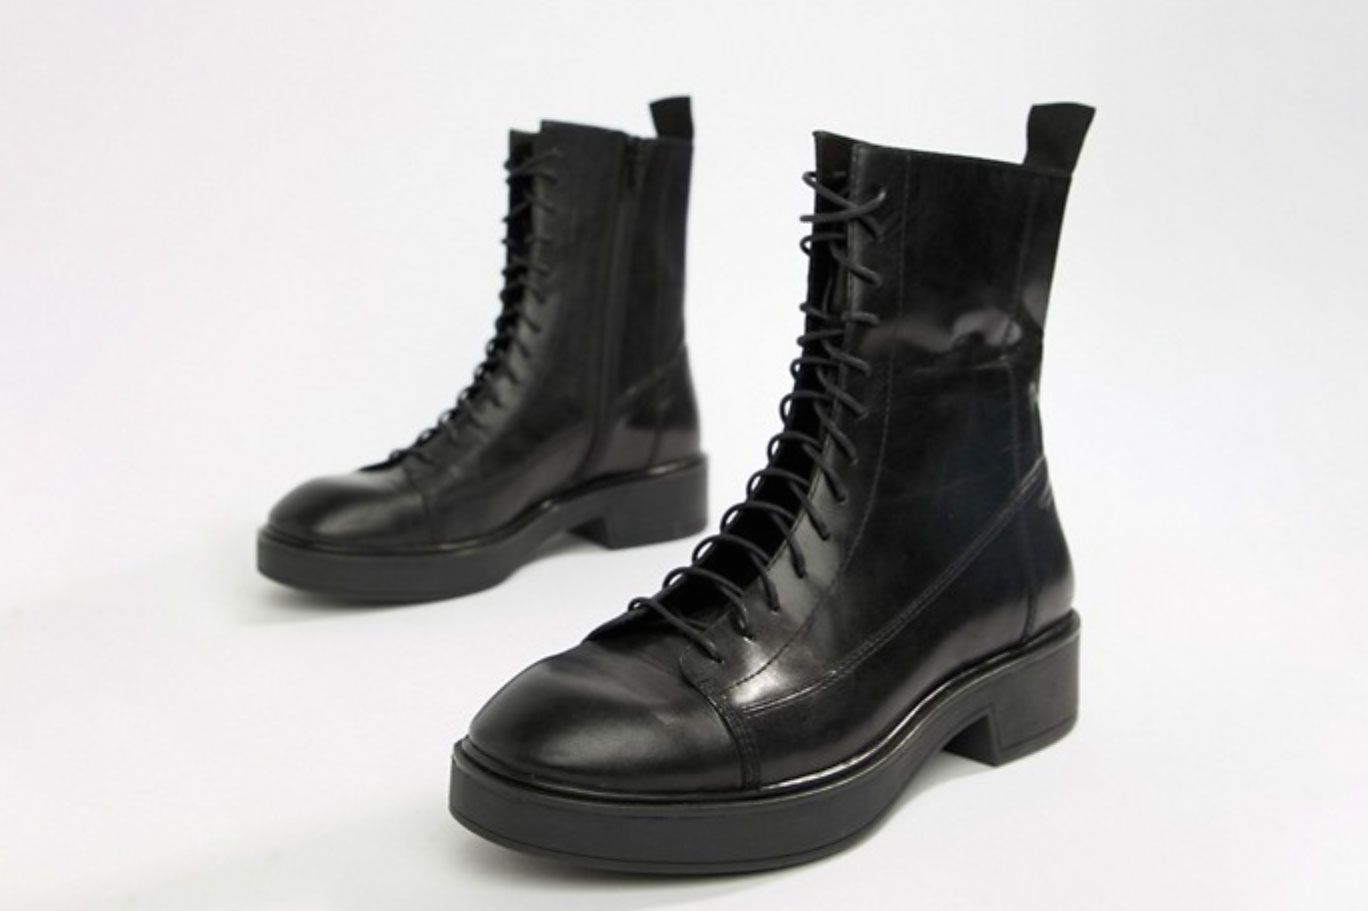 Vagabond Diane Lace-Up Black Leather Military Boots